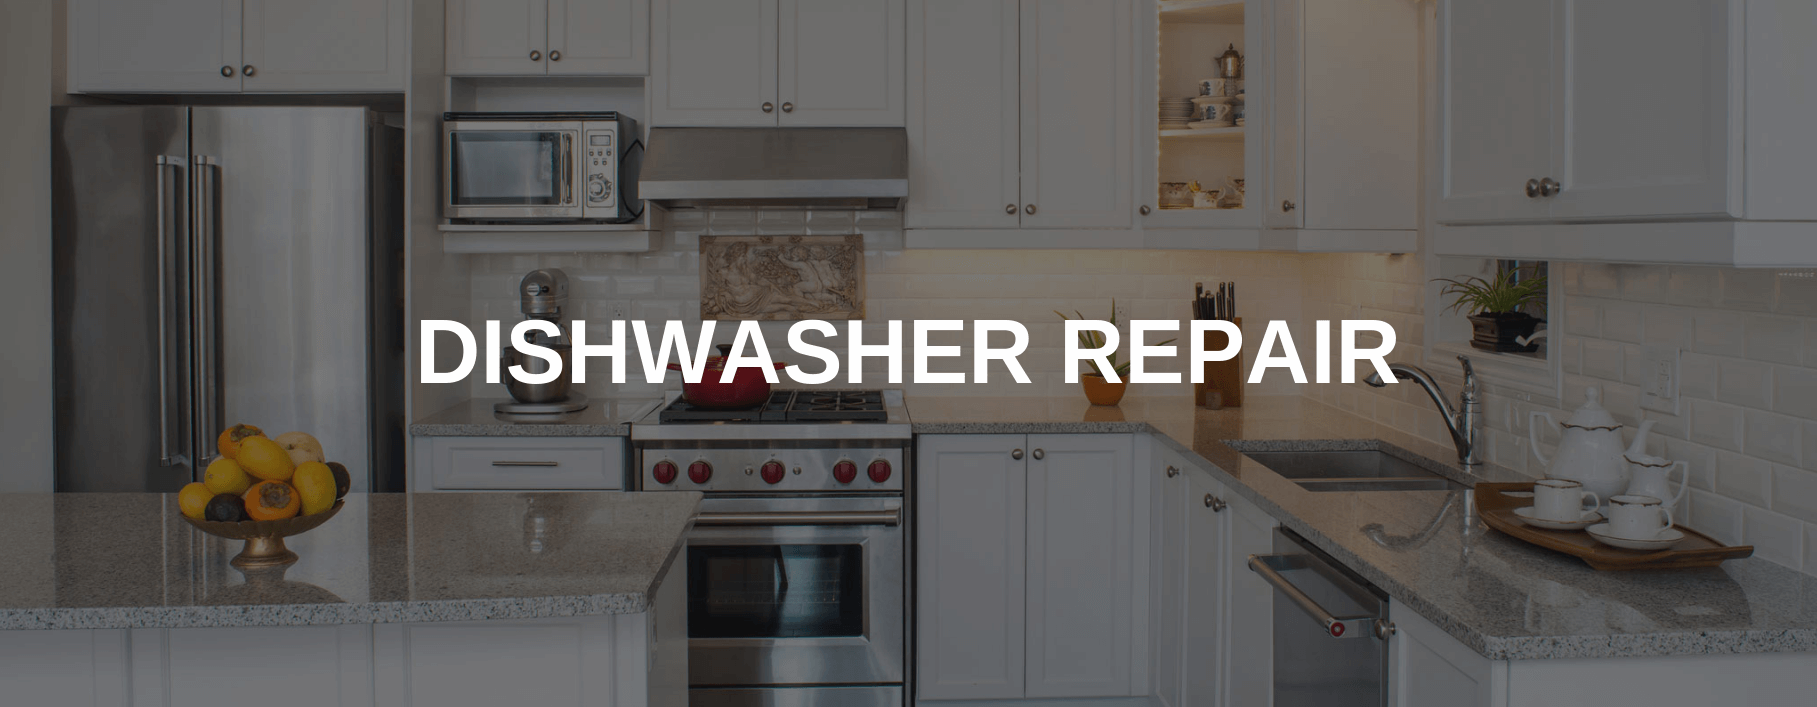 dishwasher repair dayton